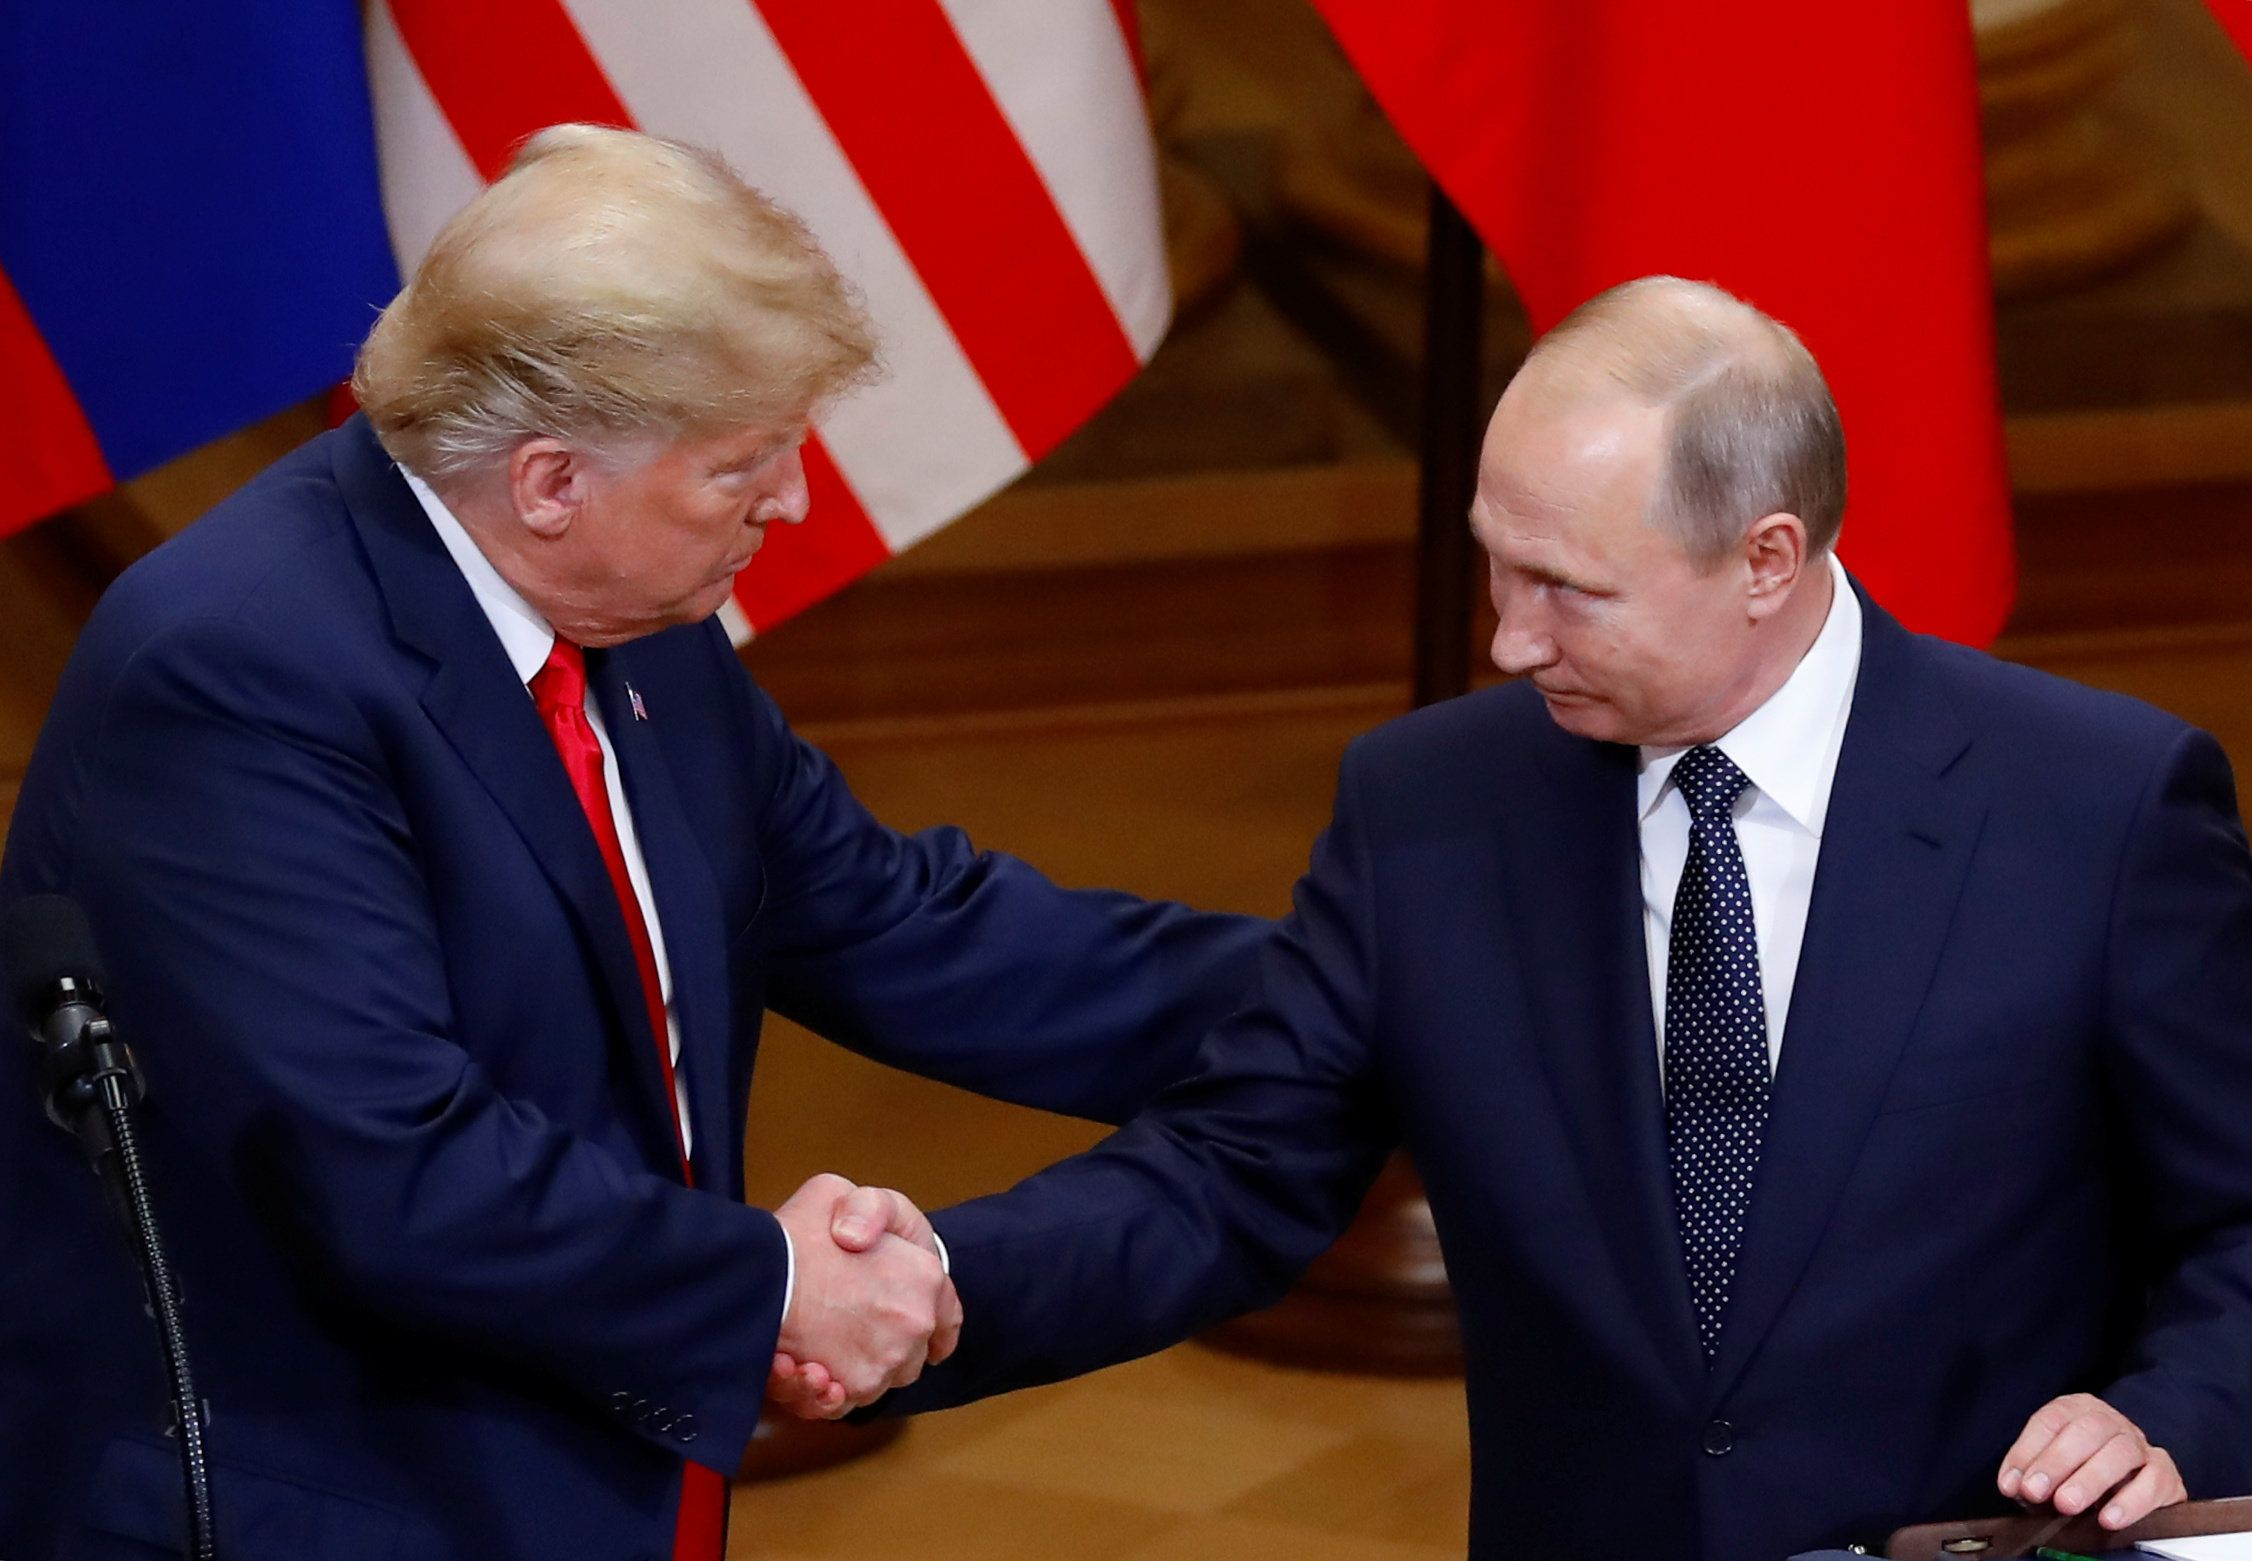 After Criticism, Trump Delays Second Meeting With Putin to Next Year